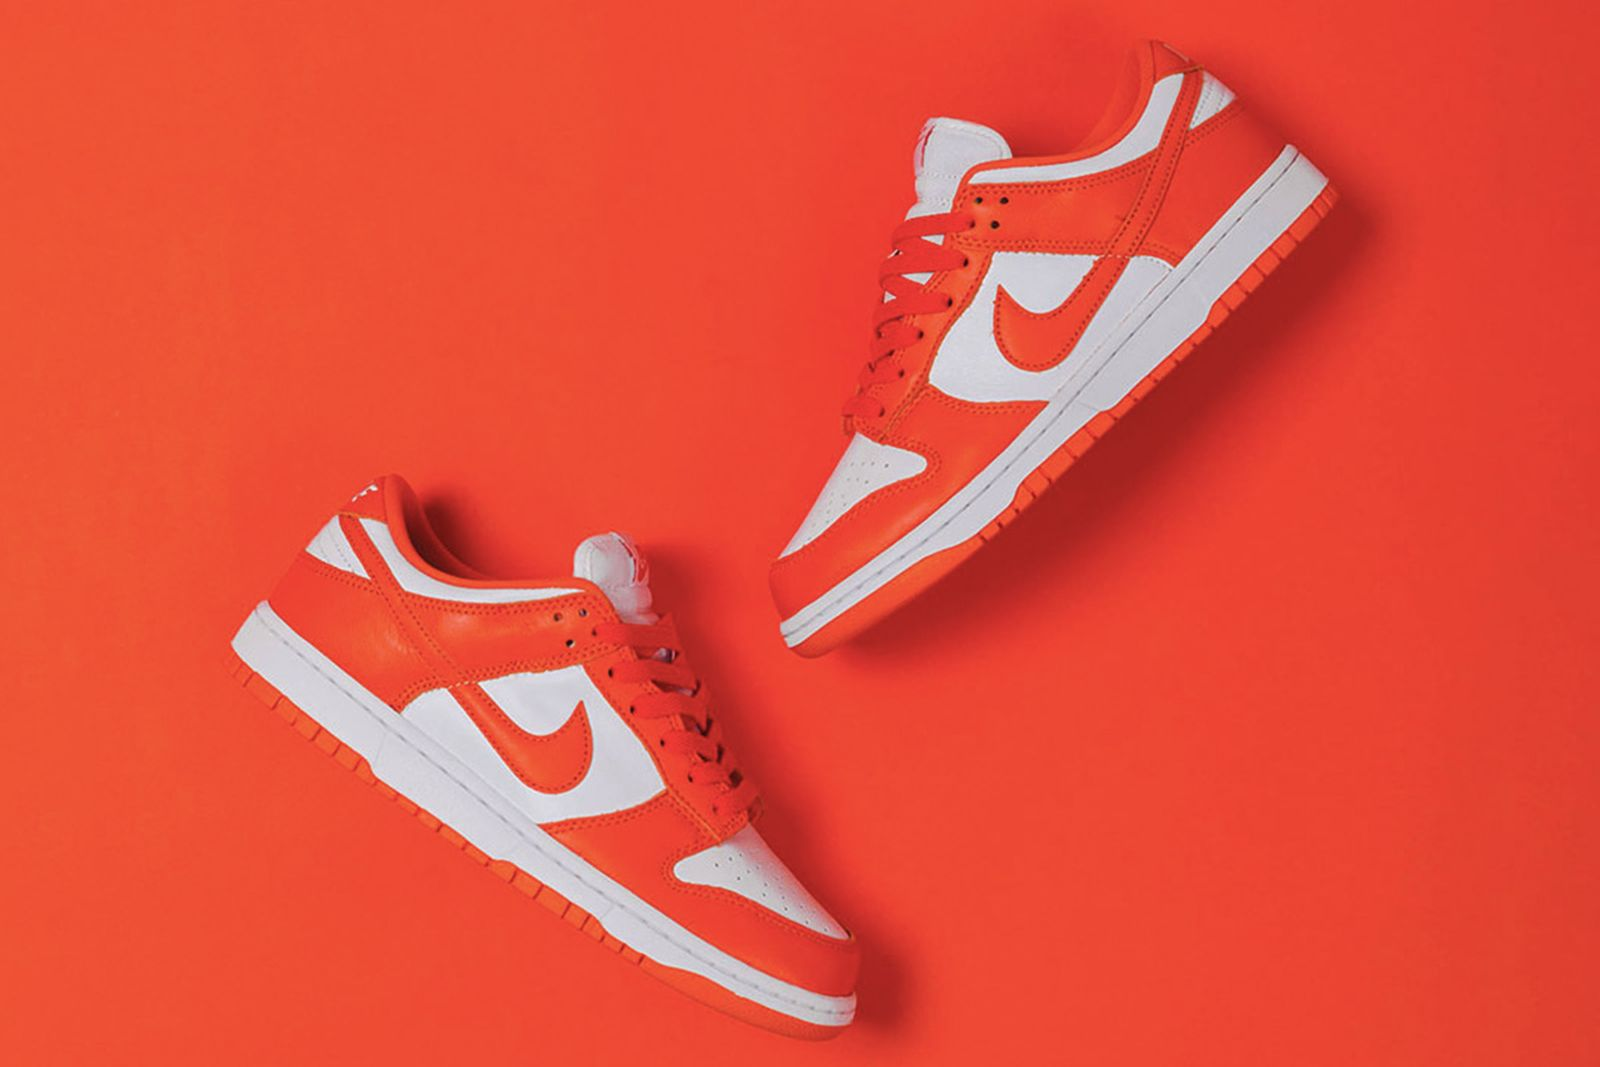 nike-dunk-low-syracuse-release-date-info-01